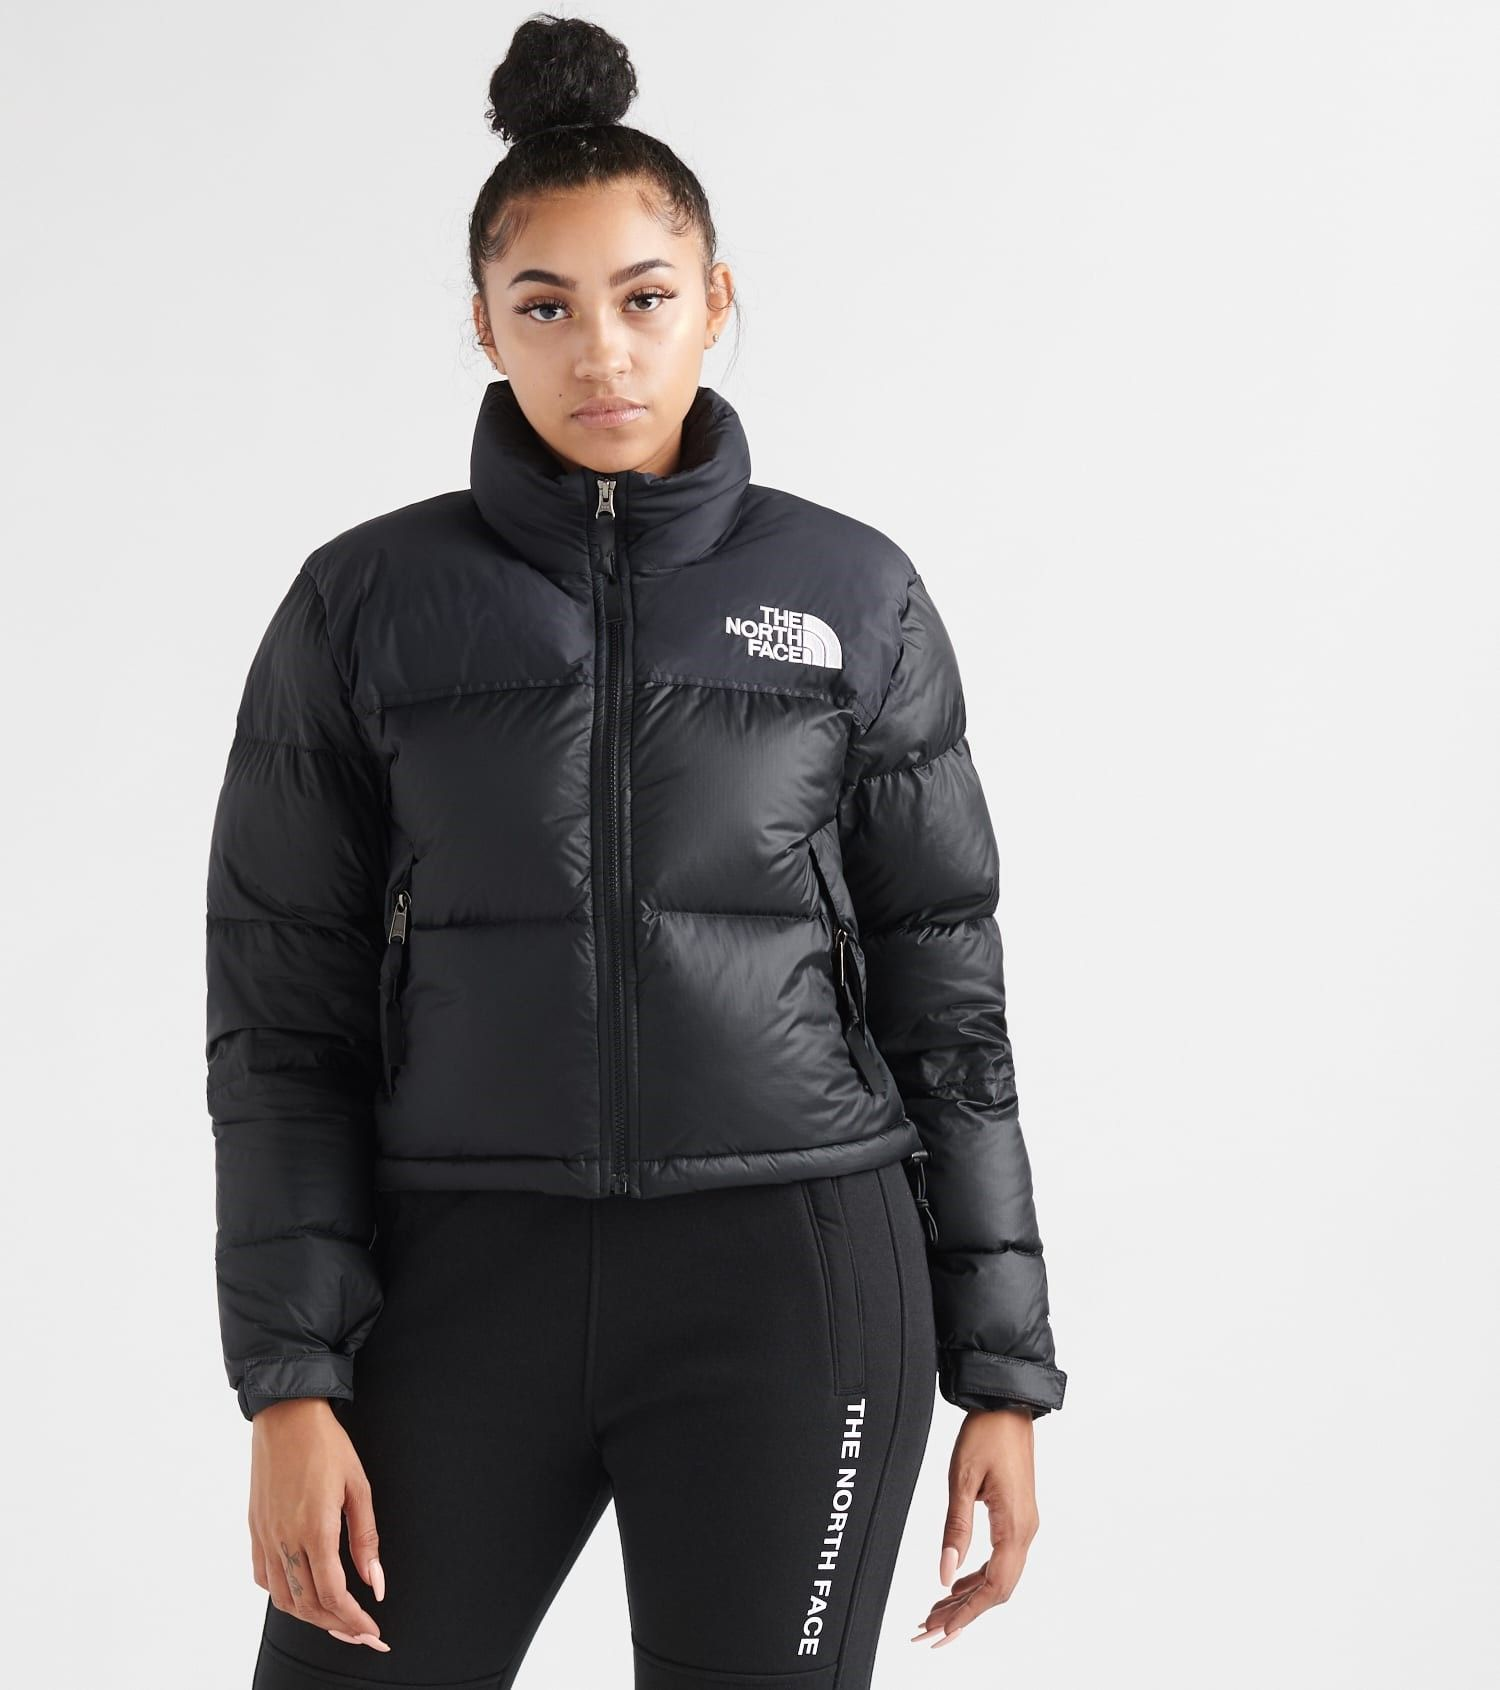 The North Face Jacket The North Face Mens Kilowatt Varsity Jacket The North Face North Face Jacket North Face Nuptse [ 1690 x 1500 Pixel ]